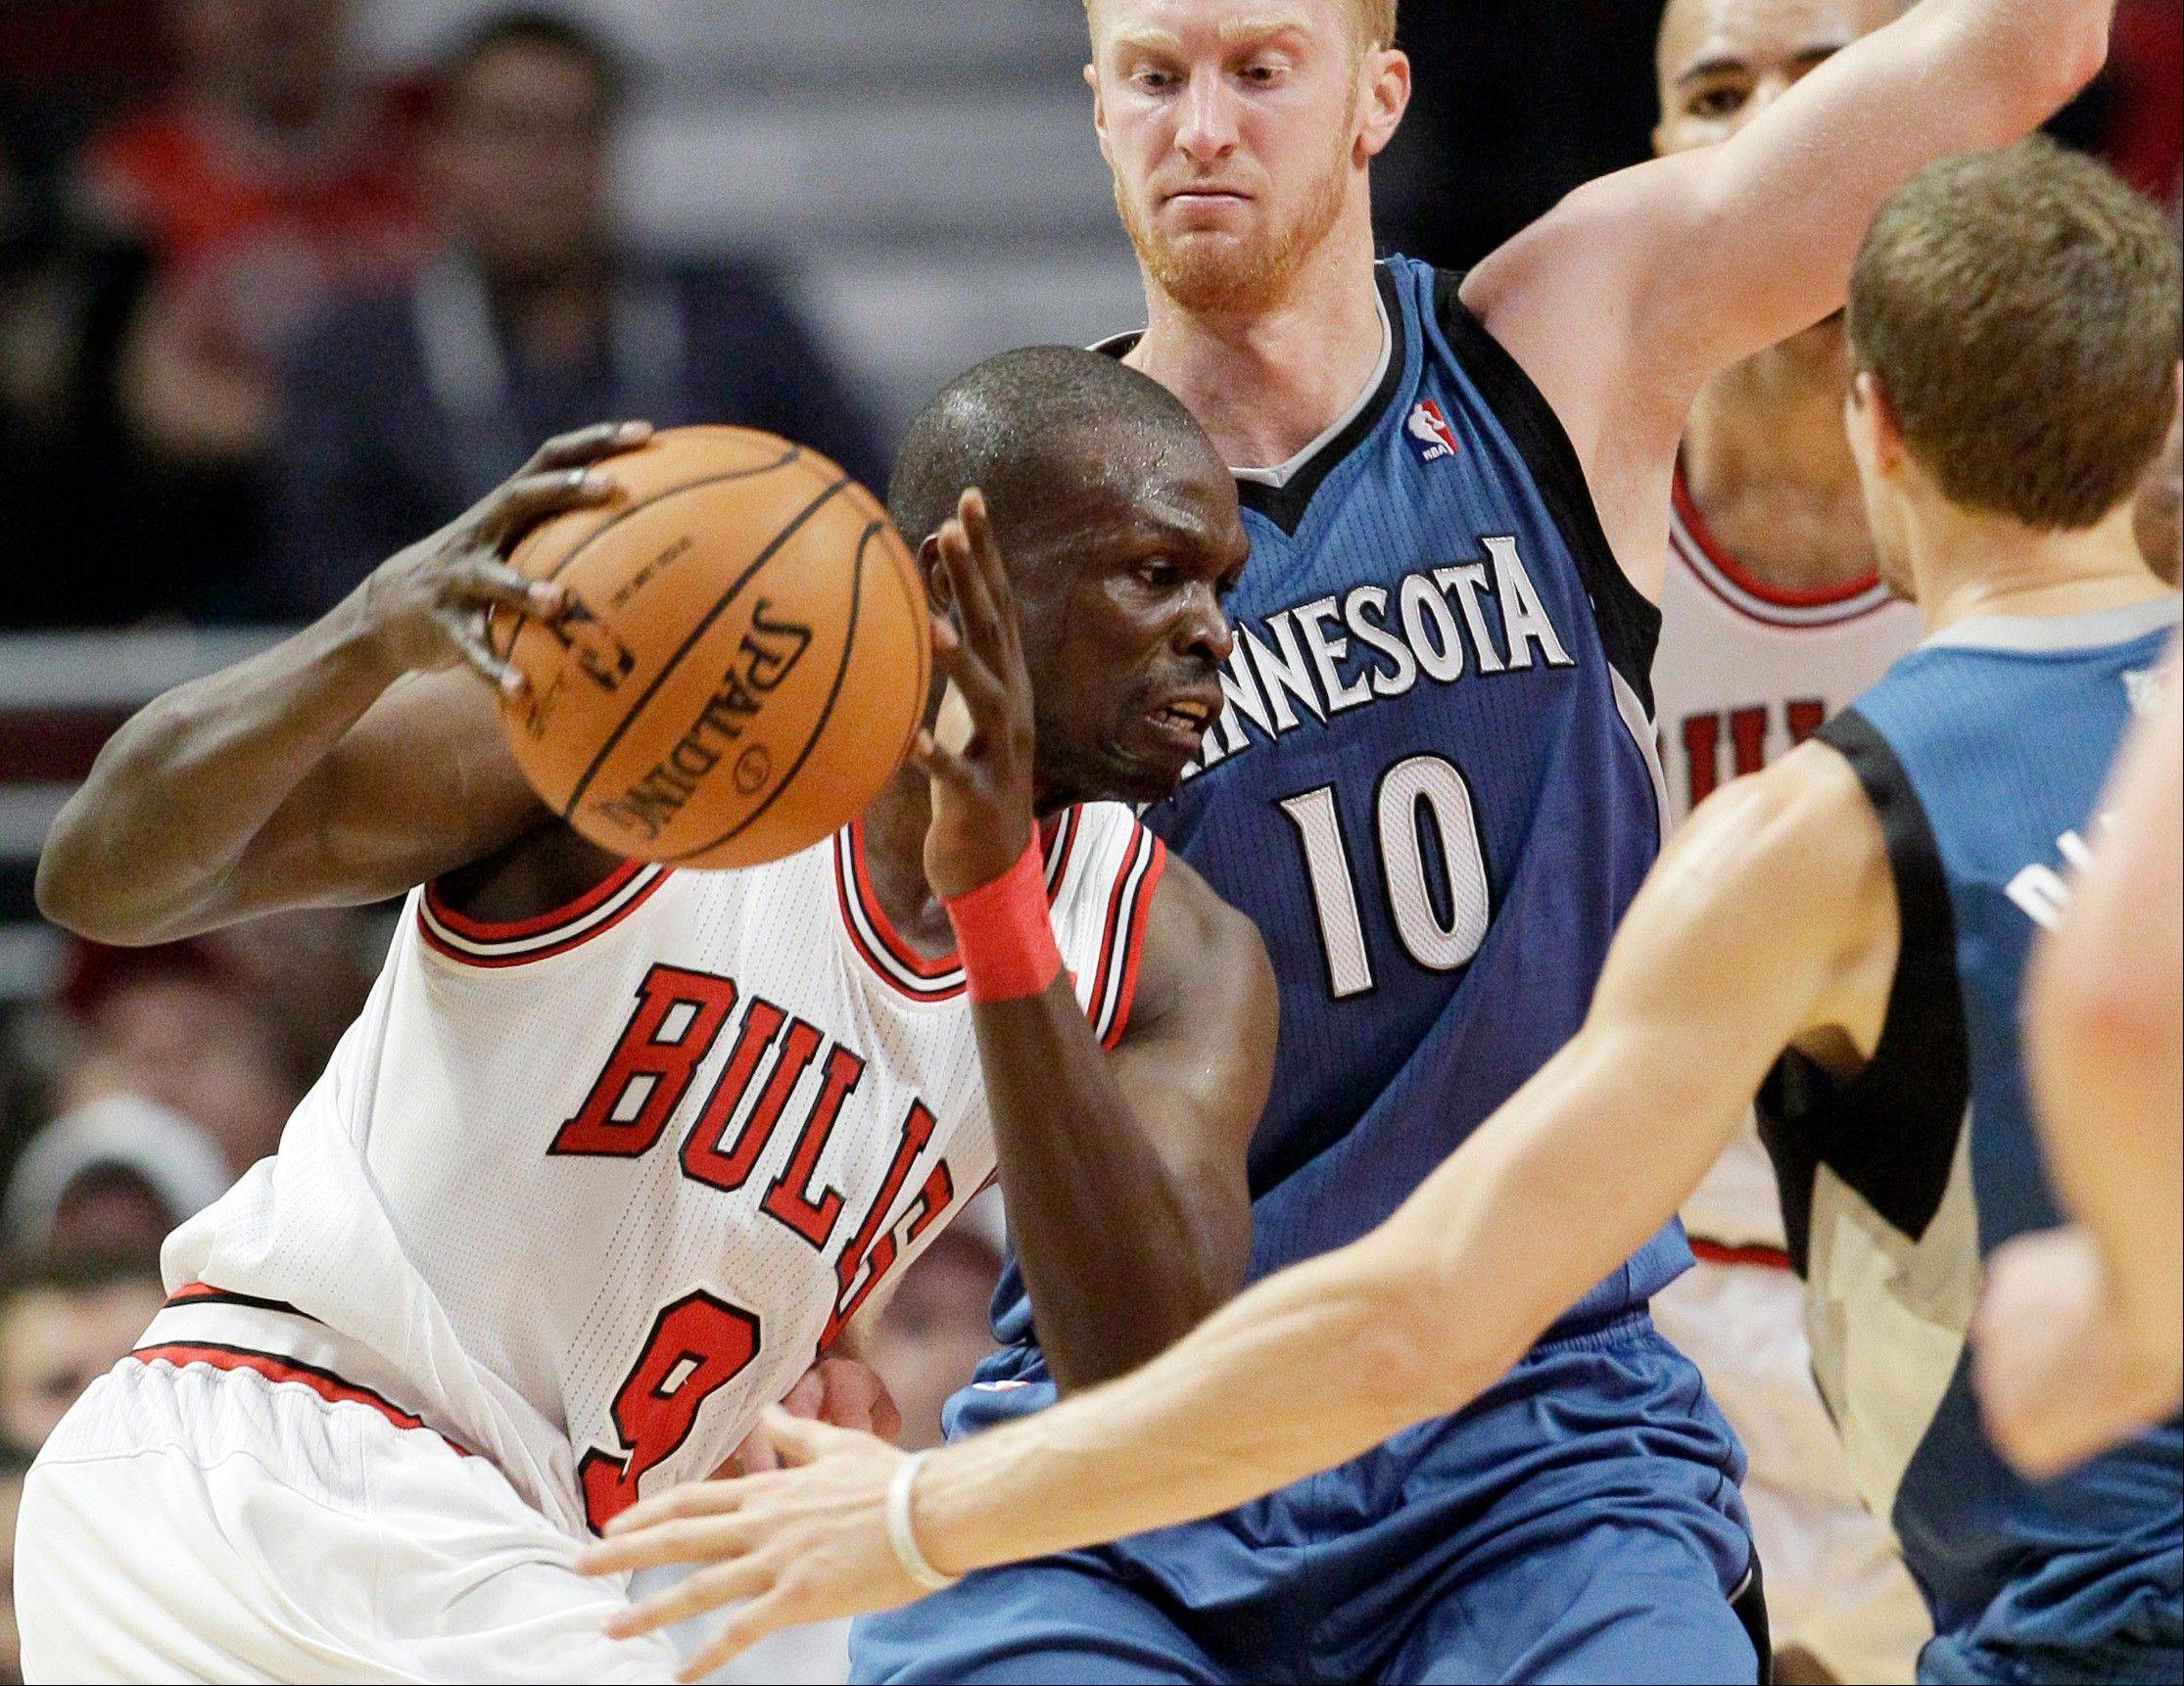 Bulls forward Luol Deng drives to the basket as Minnesota Timberwolves forward Chase Budinger guards Saturday during the first half at the United Center.